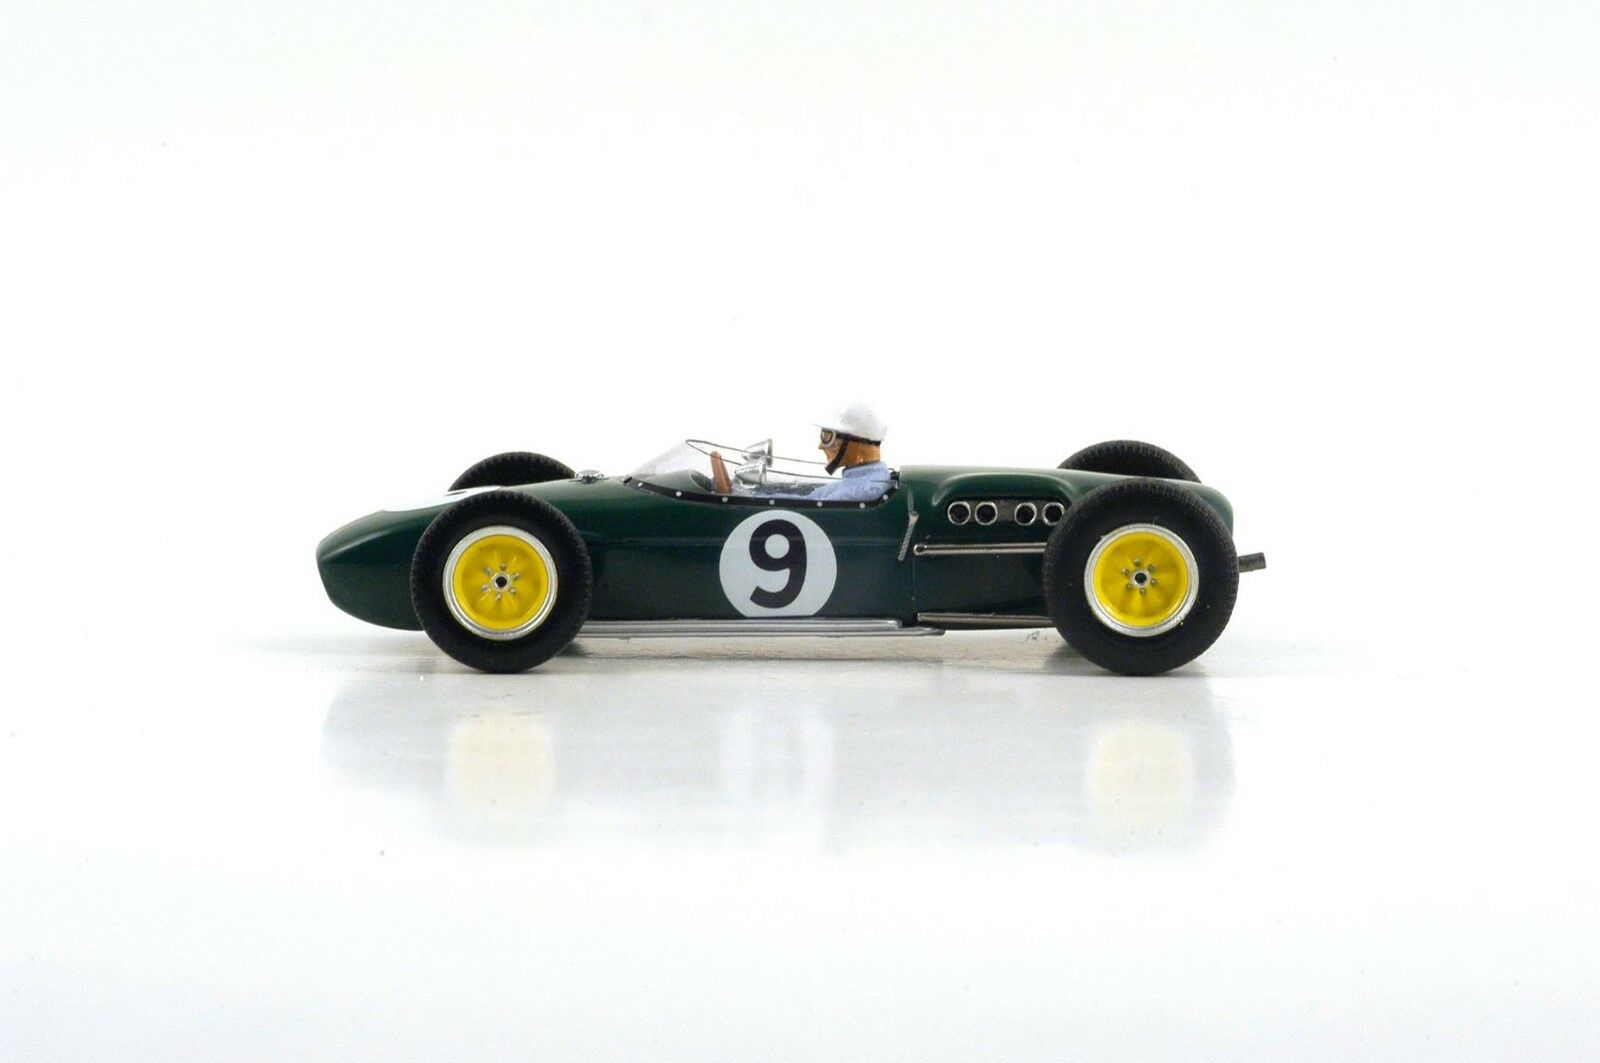 1960 Lotus 18 British GP #9 John Surtees1 43 Spark S1825 | eBay